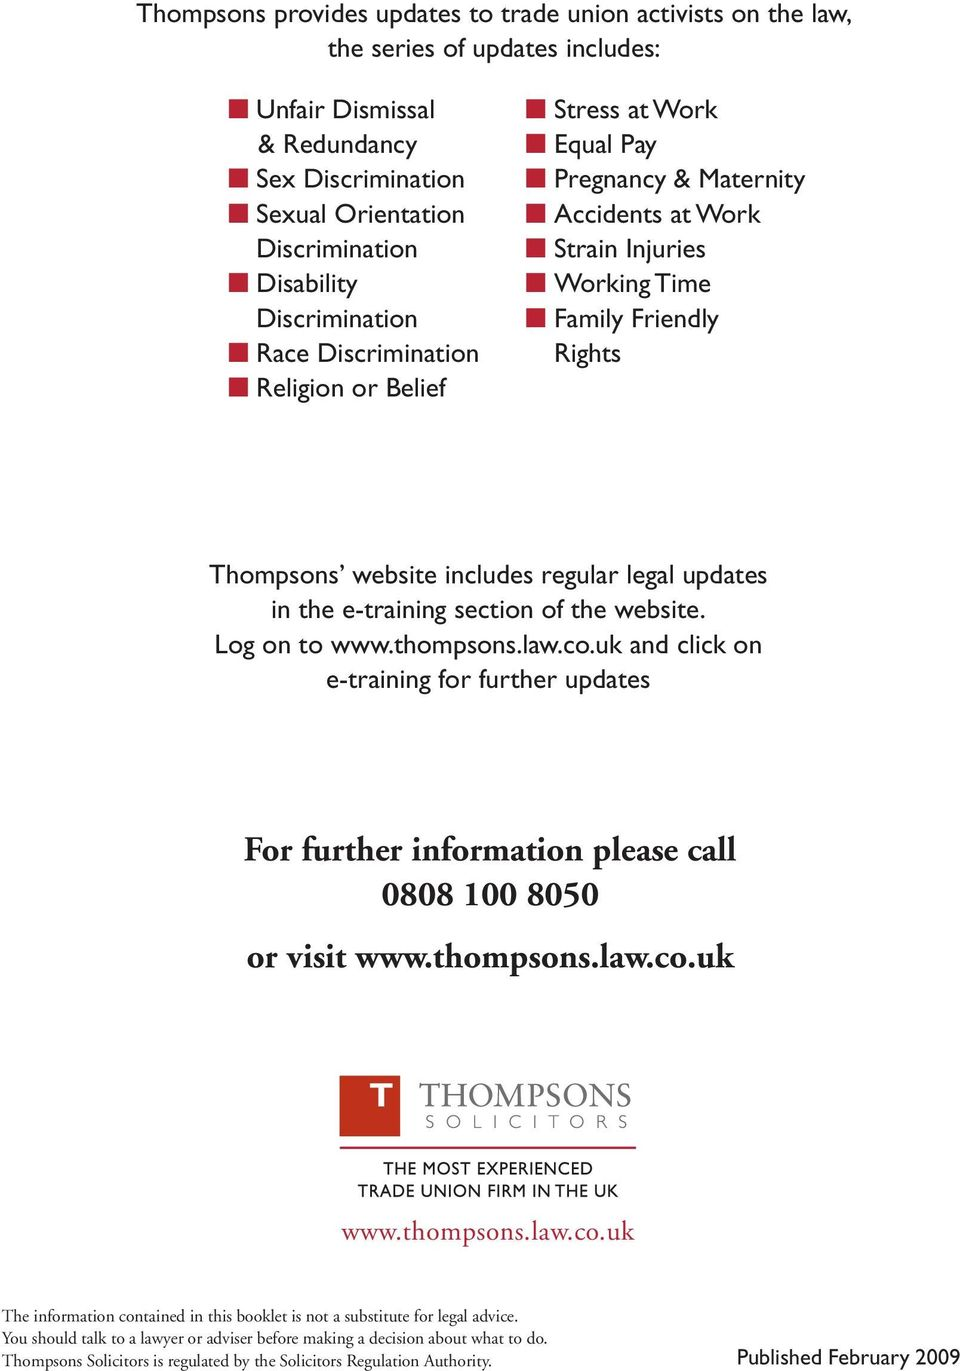 regular legal updates in the e-training section of the website. Log on to www.thompsons.law.co.